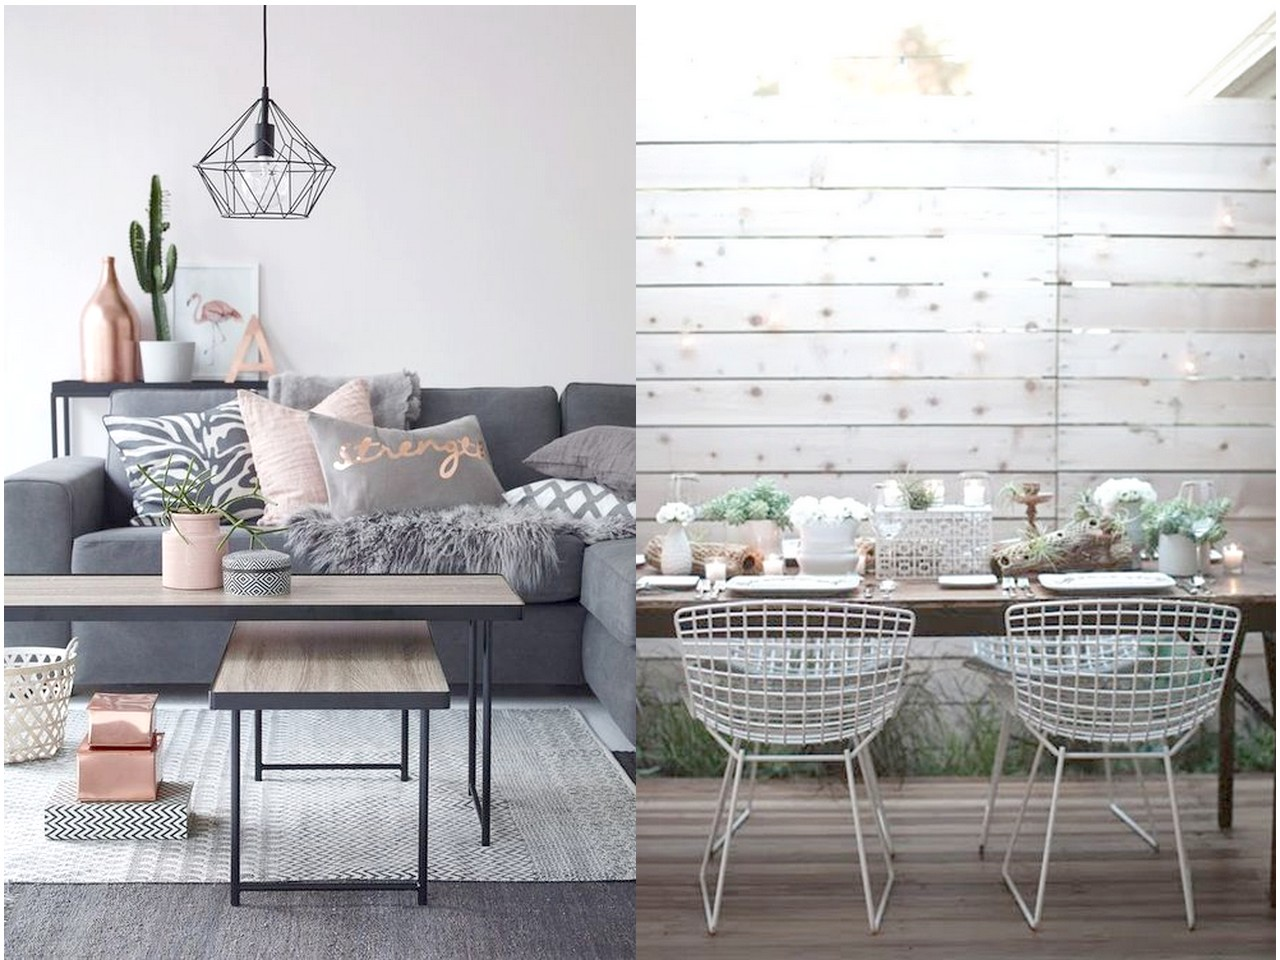 Tendencias 2016 2017 decorar con metal for Tendencia en decoracion de interiores 2016